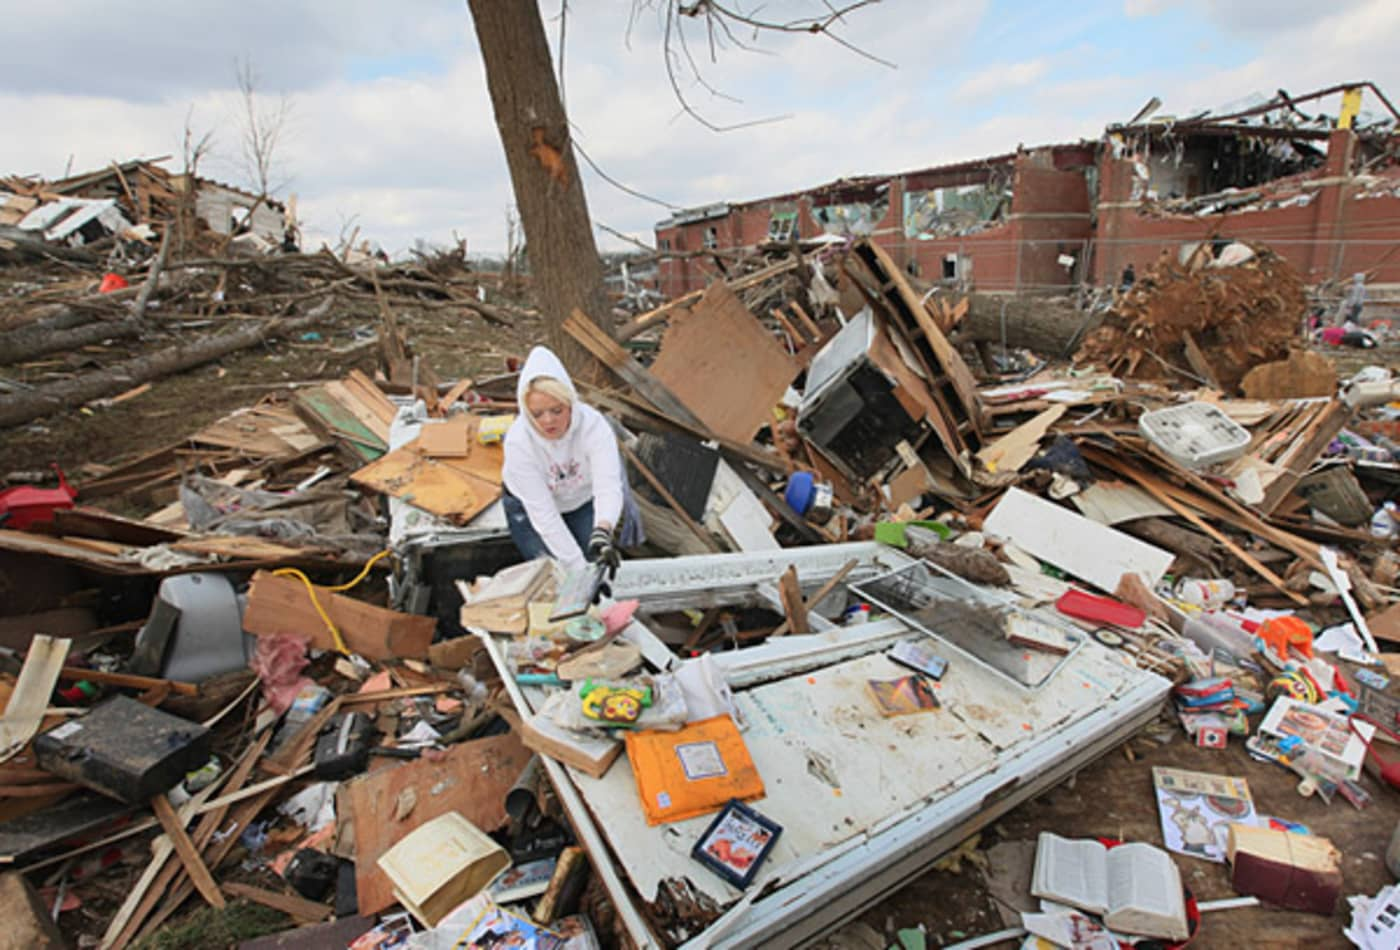 scenes-from-the-midwest-tornadoes-woman-salvaging.jpg